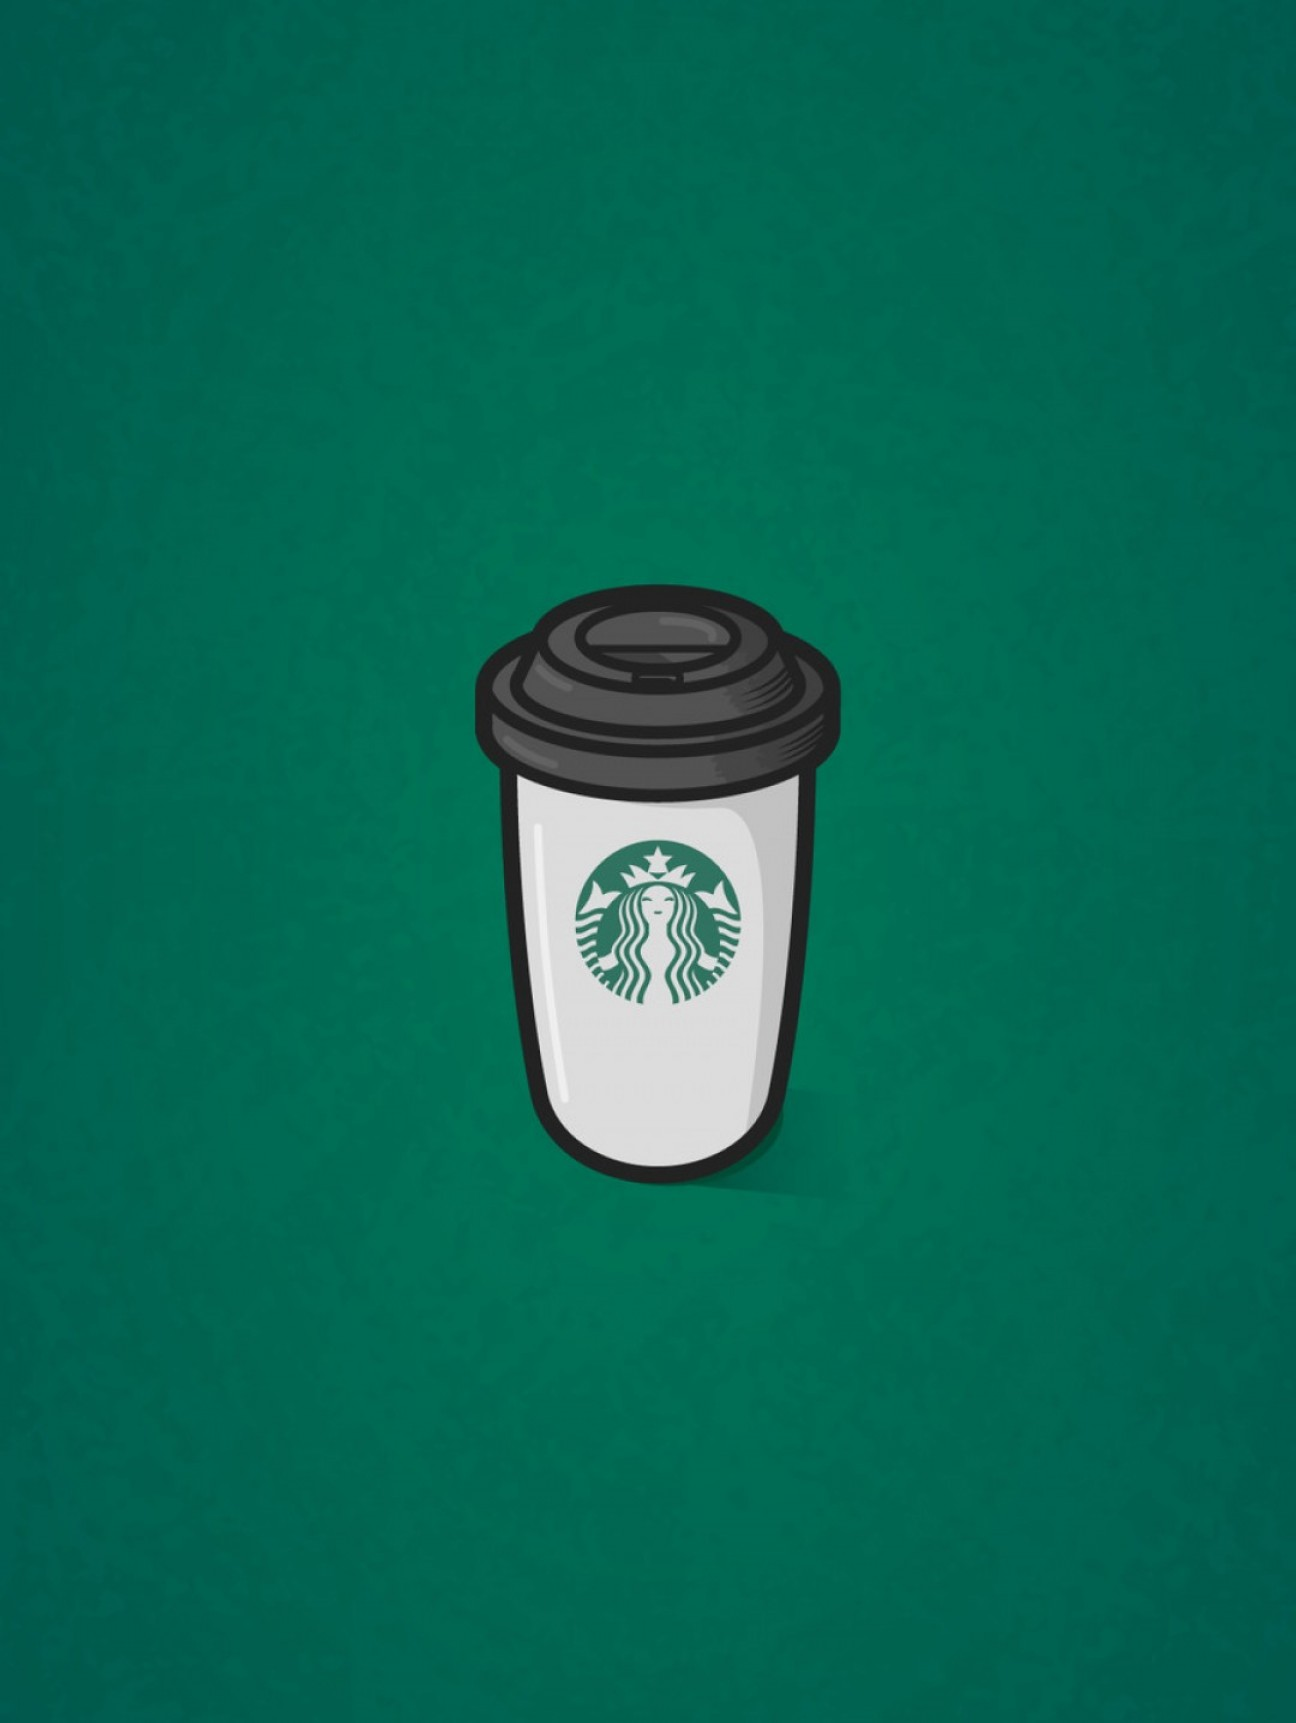 Starbucks China Vector: Illustration Of A Starbucks Coffe Cup In Vector Style